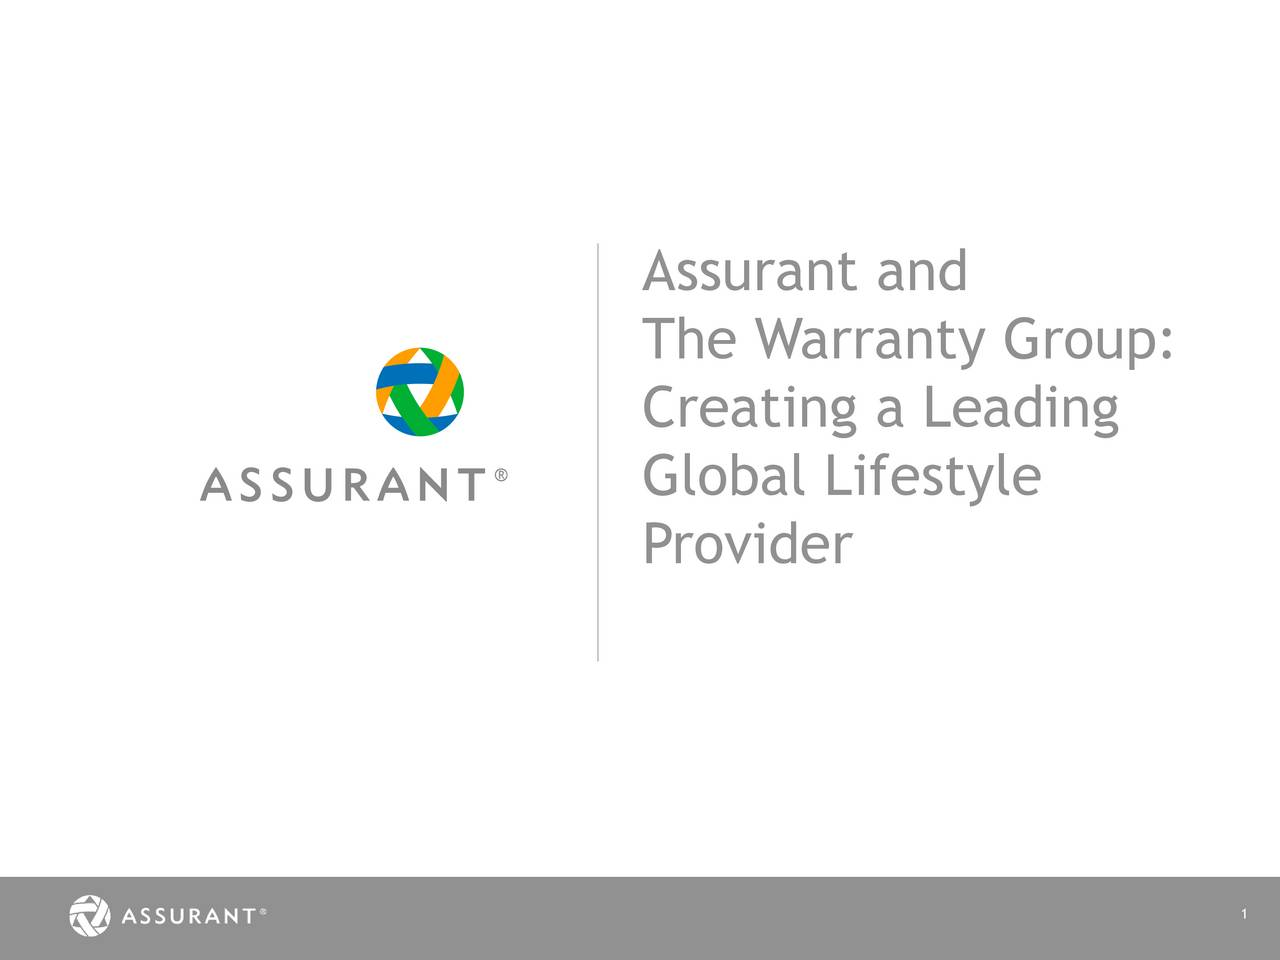 The Warranty Group: Creating a Leading Global Lifestyle Provider 1